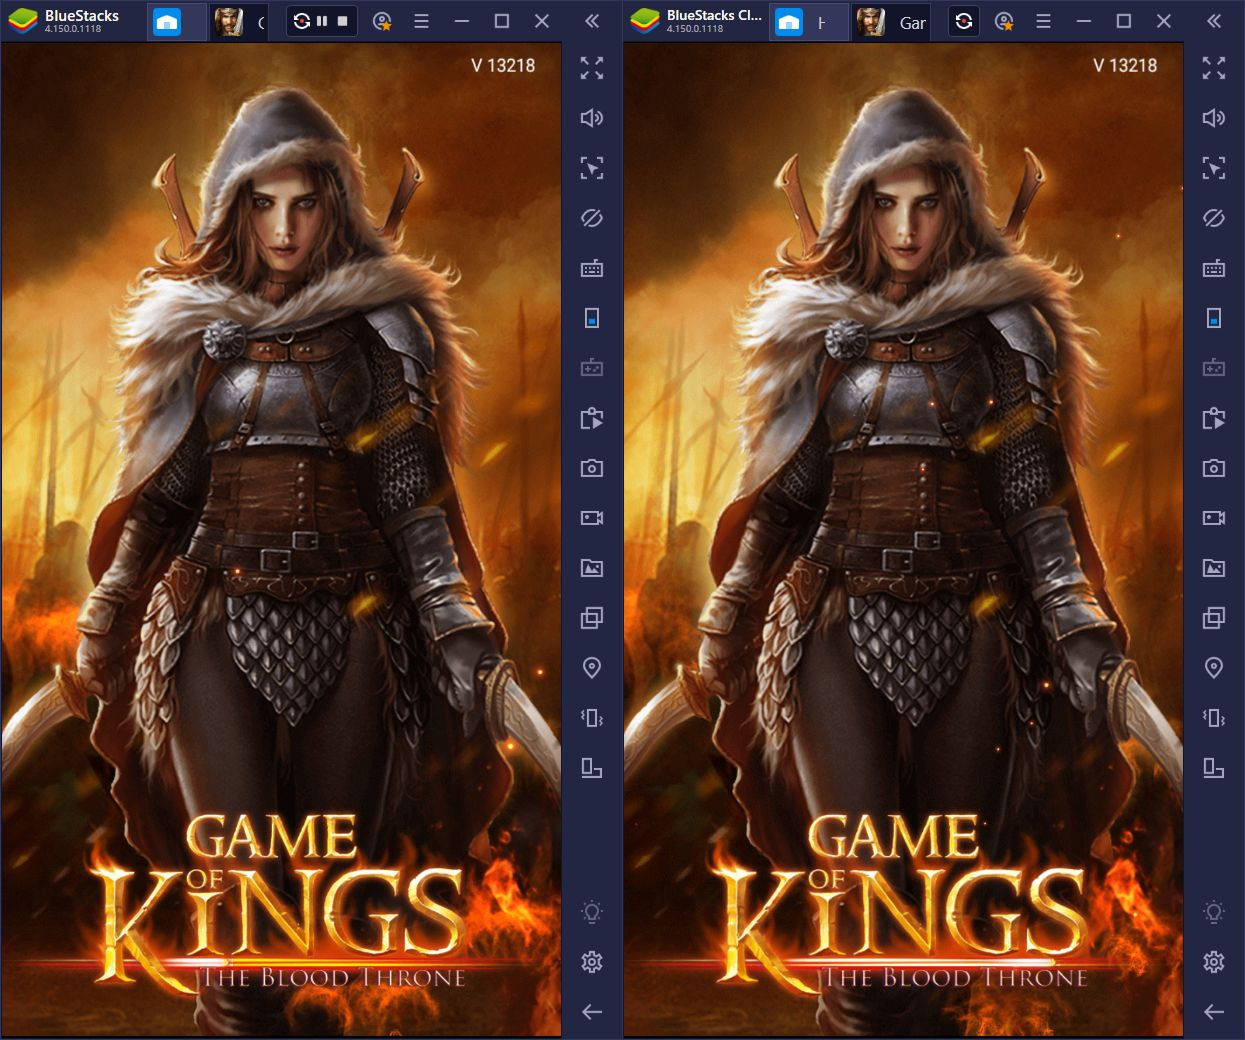 Game of Kings: The Blood Throne on PC - How to Win with BlueStacks